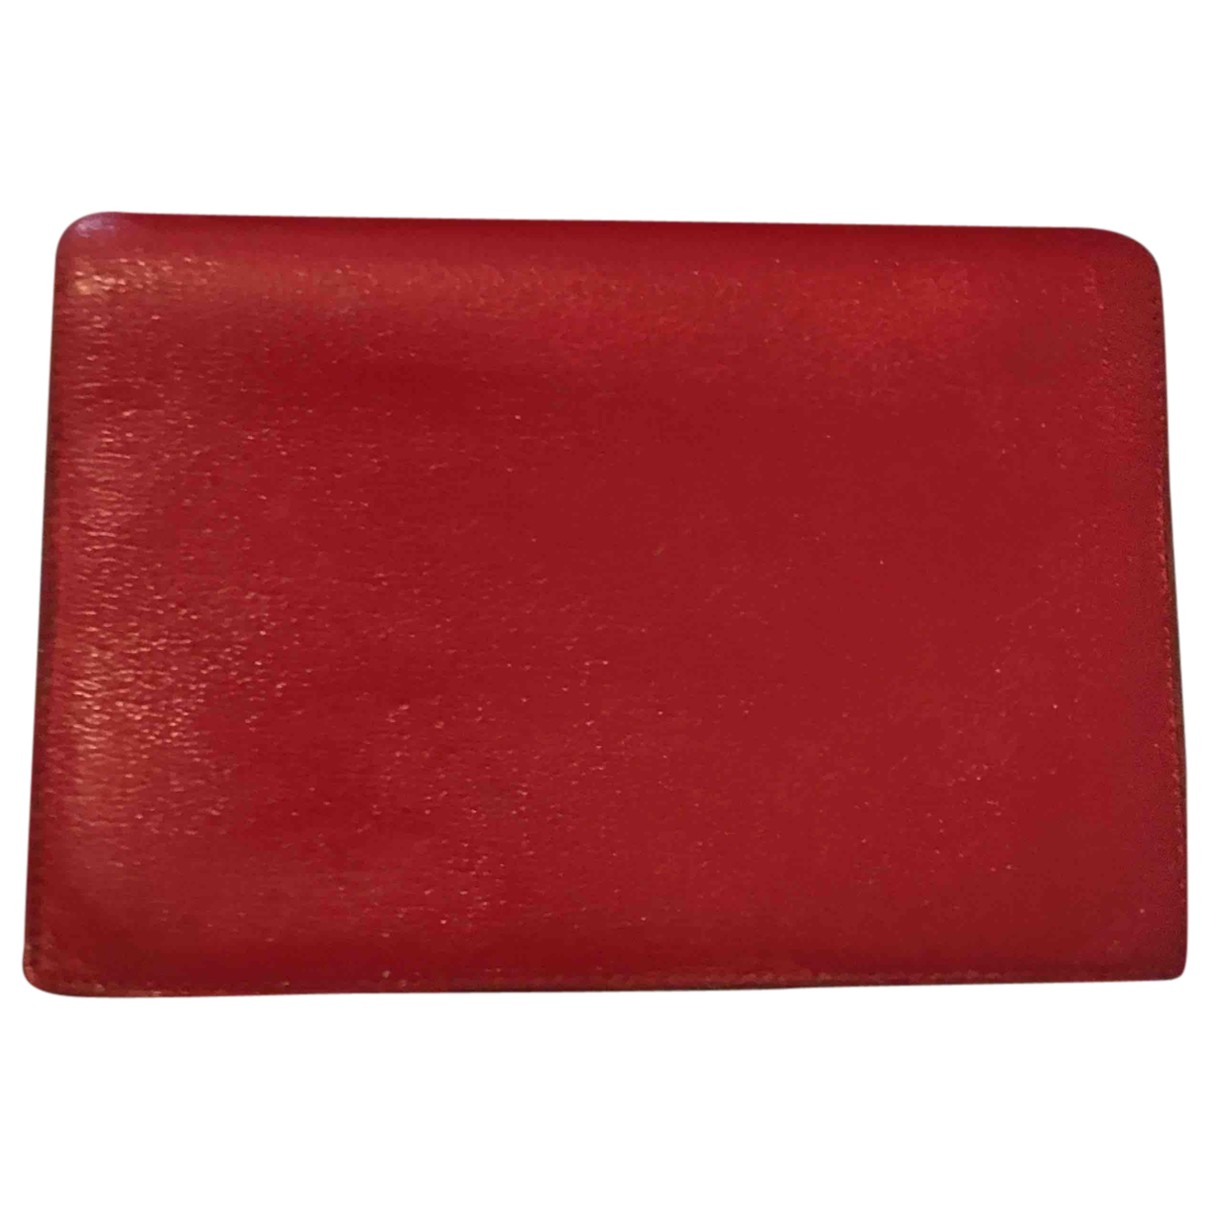 Hermès N Red Leather Purses, wallet & cases for Women N